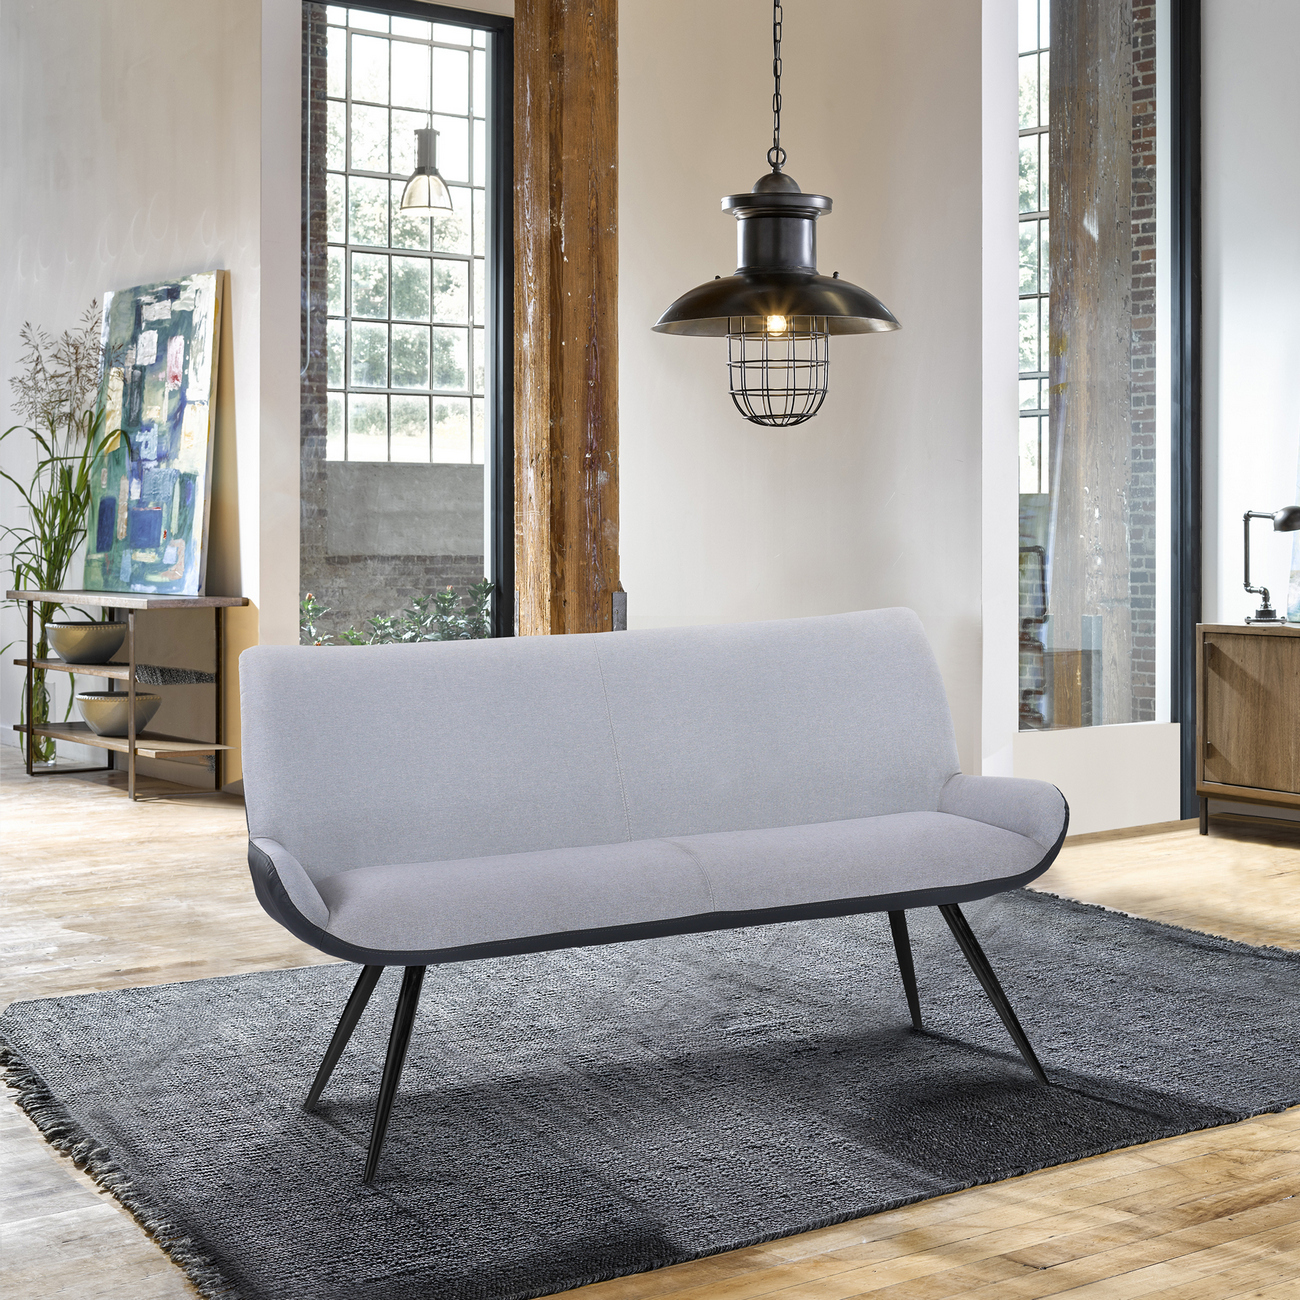 Armen Living Coronado Contemporary Bench Brushed Gray Powder Coated